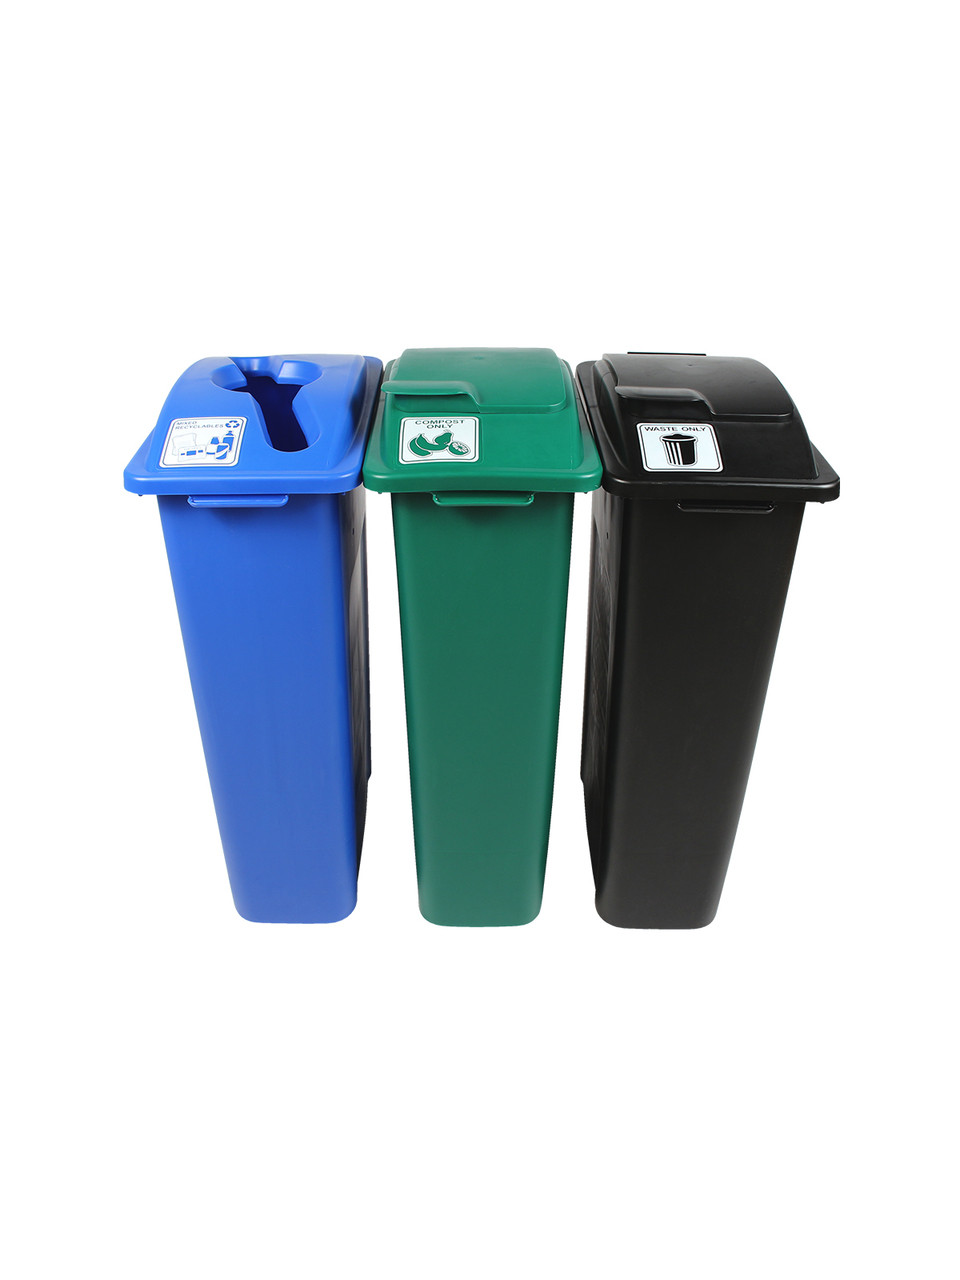 69 Gallon Simple Sort Skinny Recycle Bin Center 8106045-255 (Mixed, Compost Lift Lid, Waste Lift Lid)